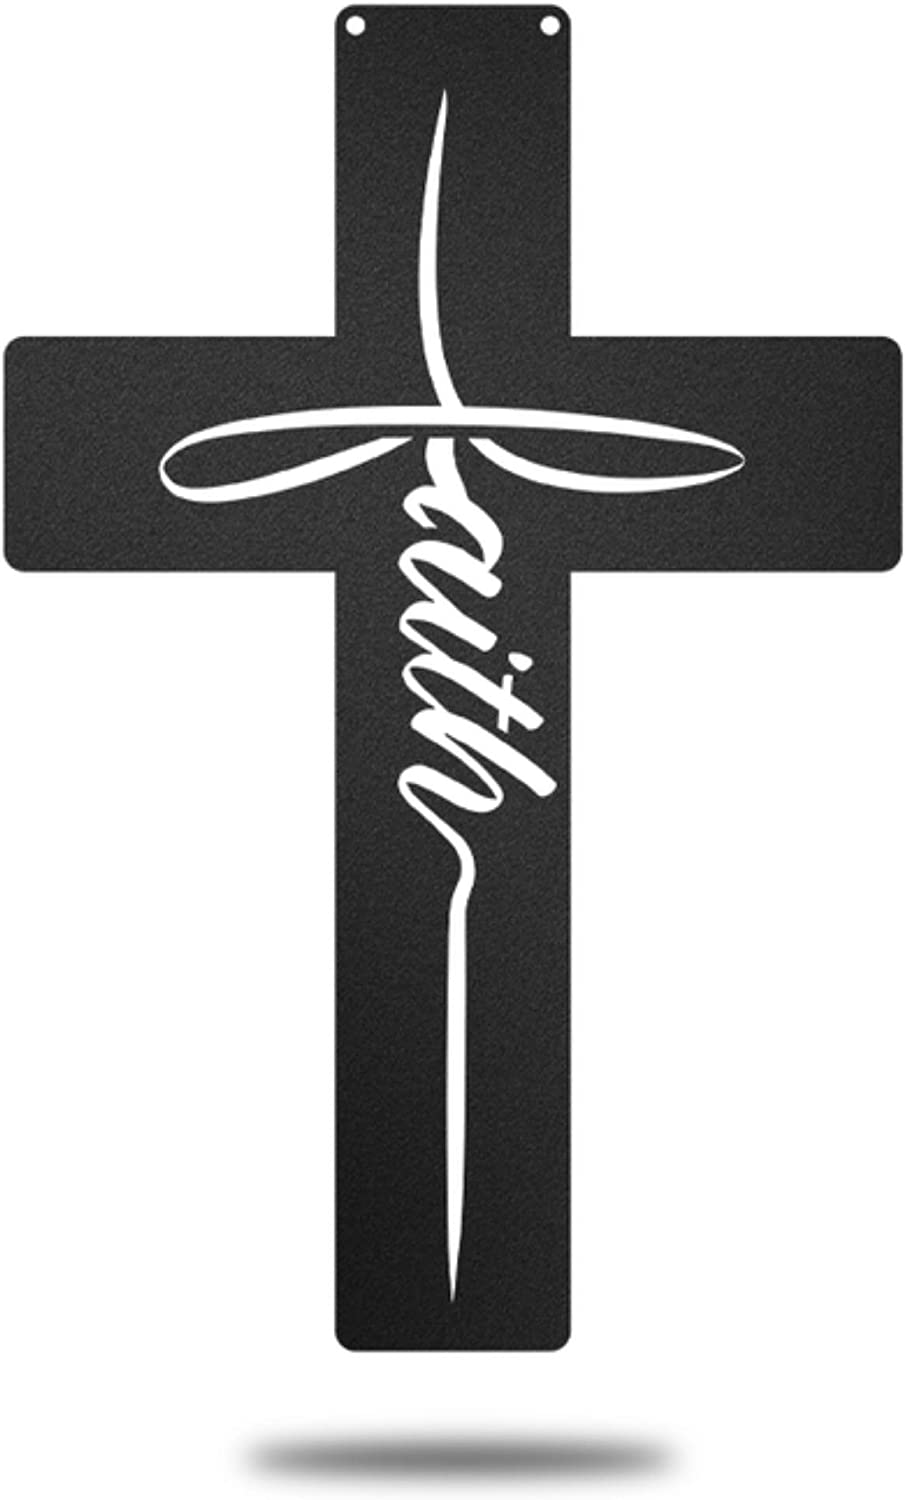 Redline Steel Cross Wall Decor - Conviction Cross Art for Home, Kitchen, Prayer Room (Black)